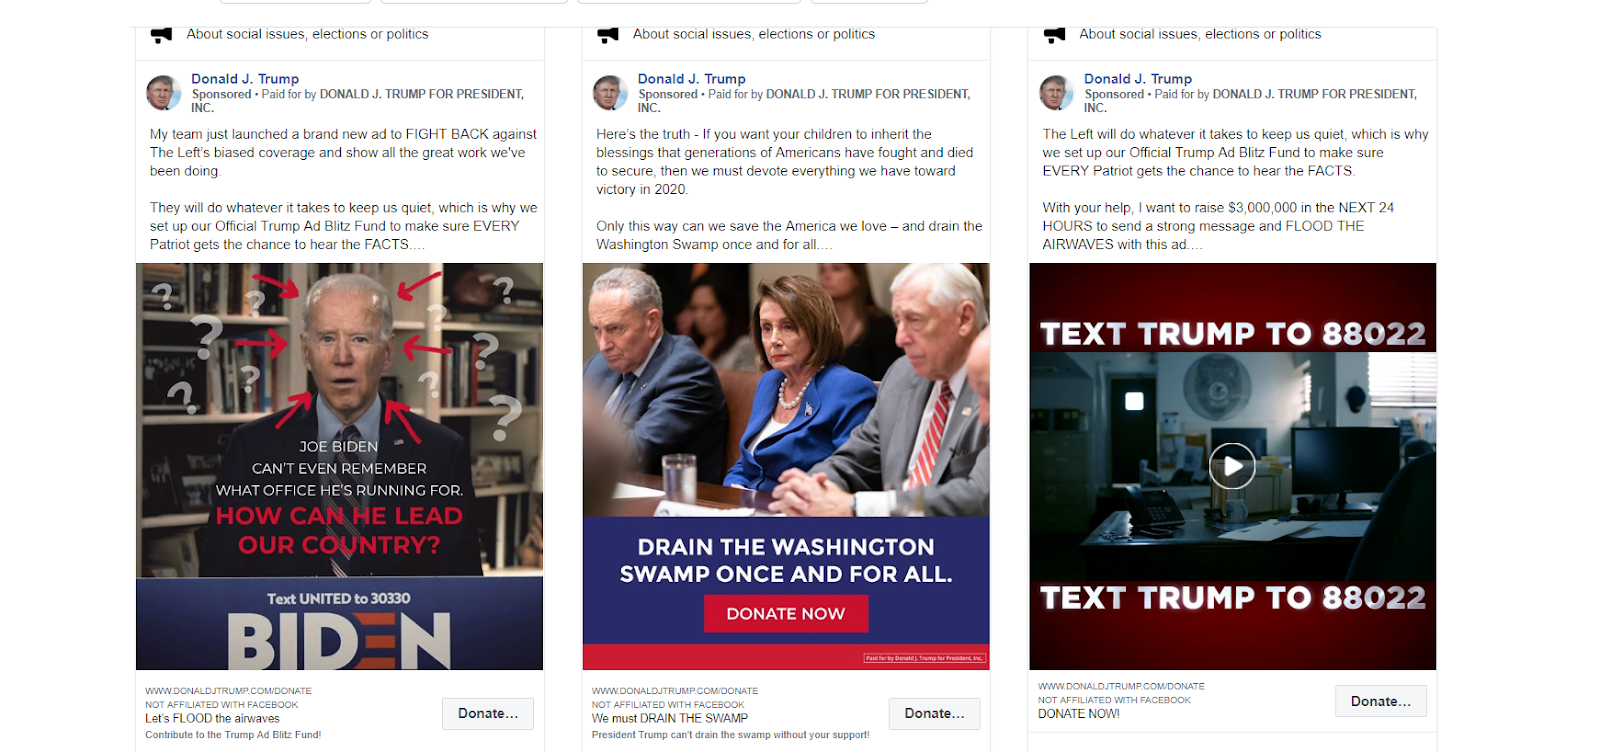 Trump's Facebook Ads Overview